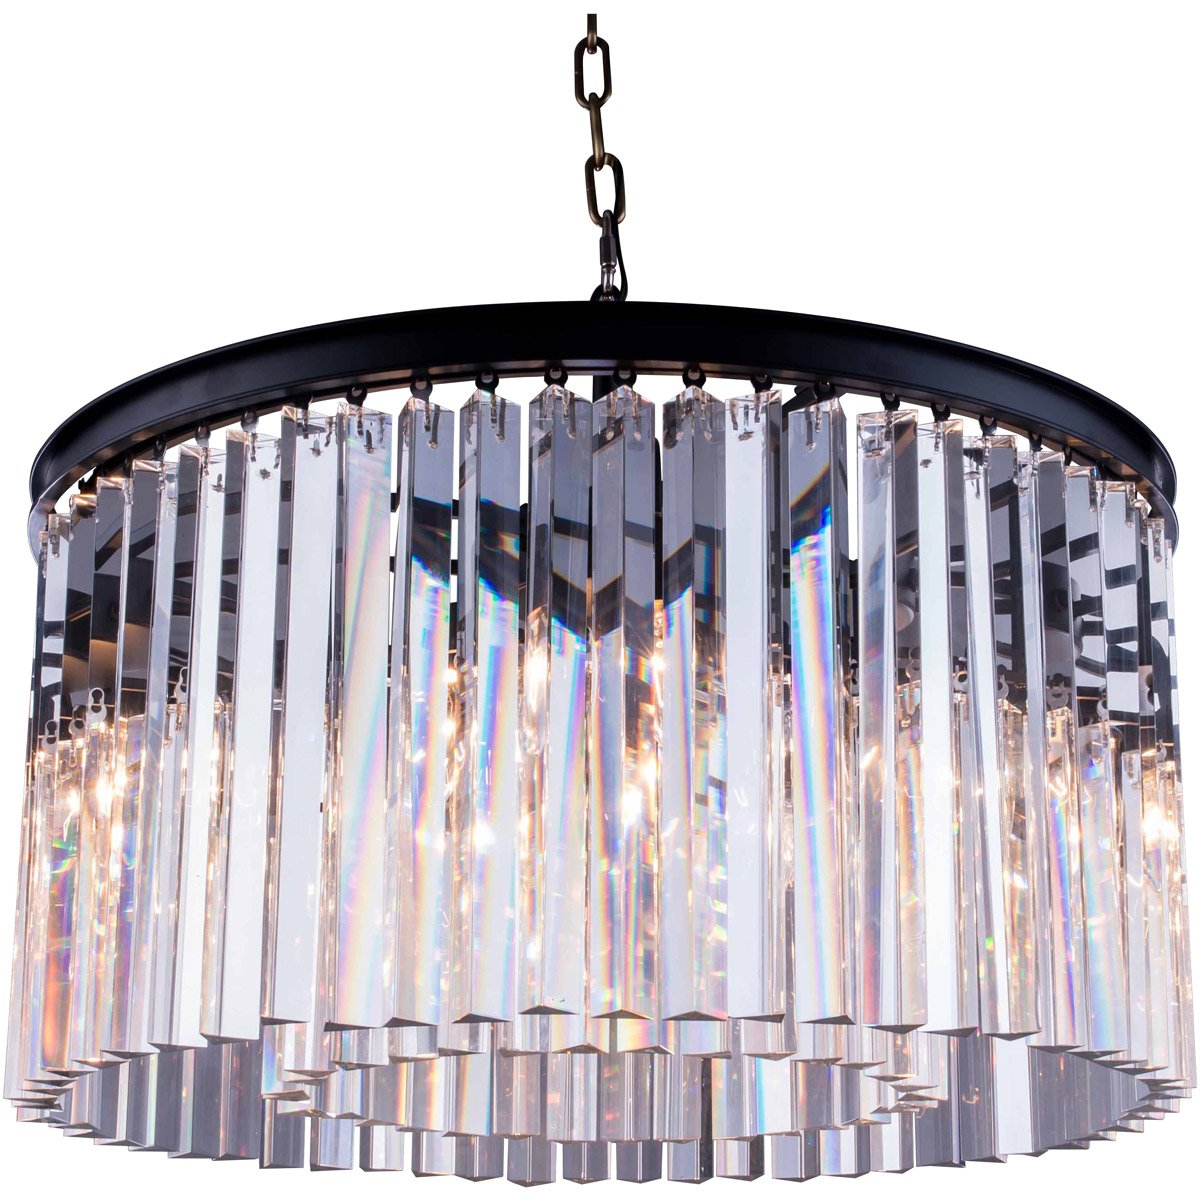 Sydney 26 Crystal Pendant Chandelier With 8 Lights - Matte Black Finish And Clear Crystal Chandelier